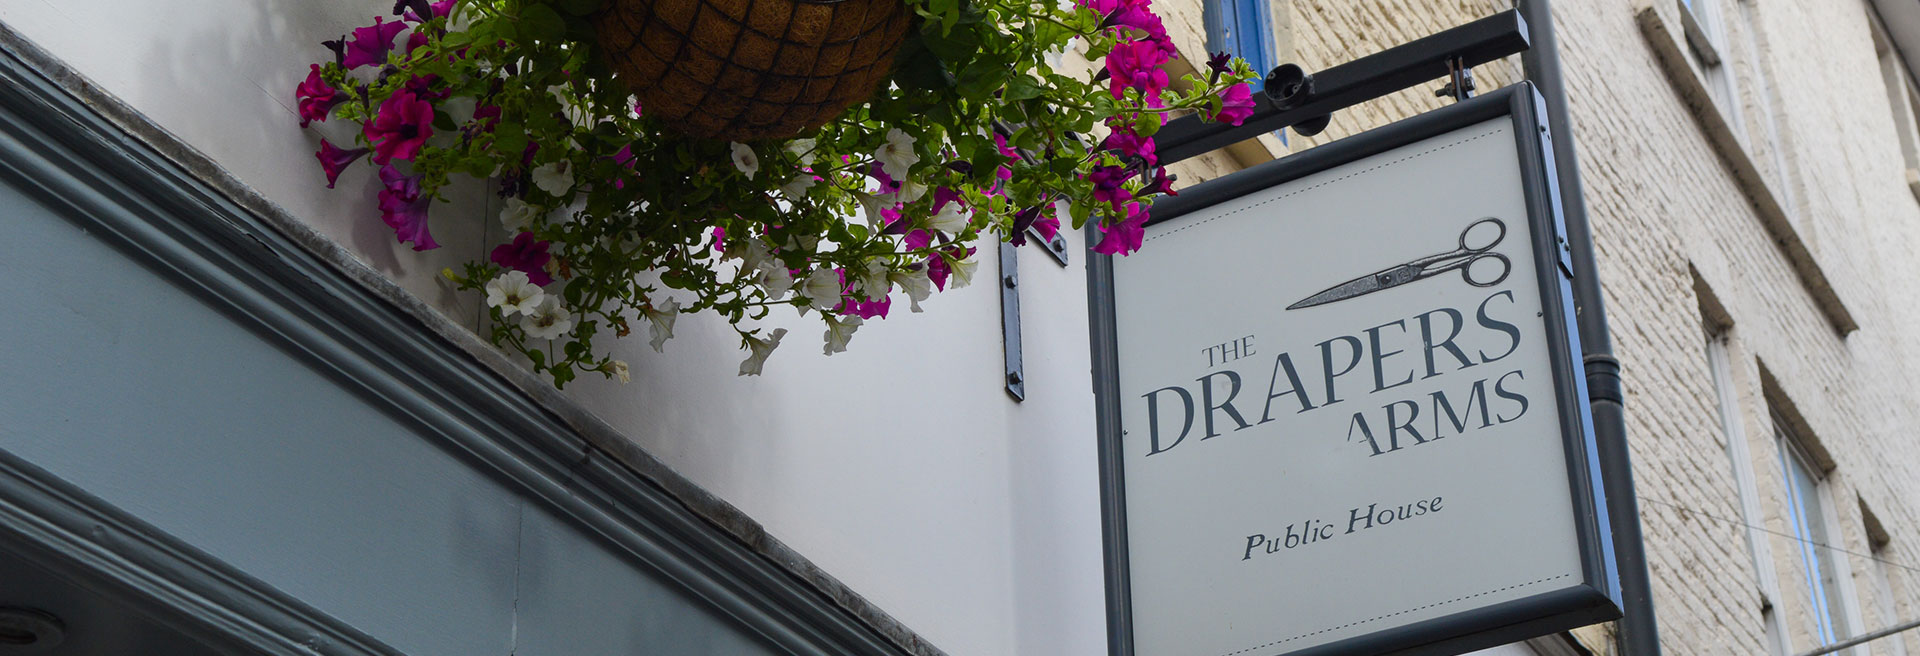 The Story of The Drapers Arms